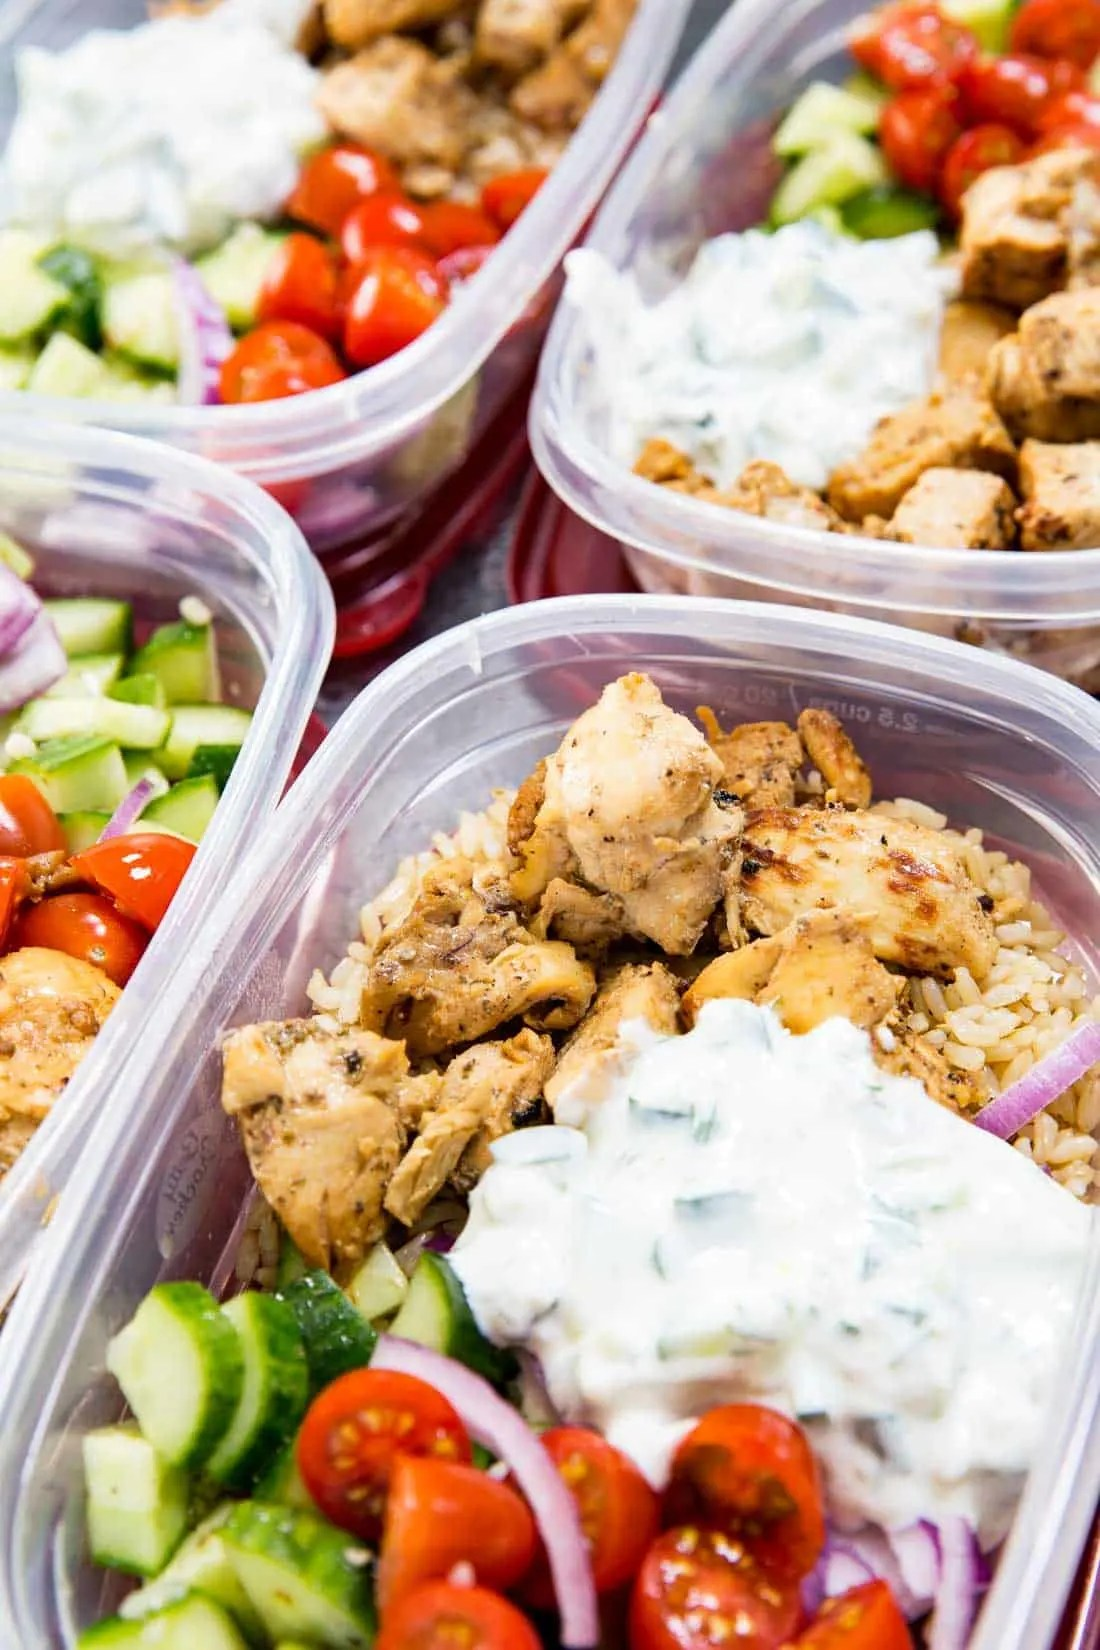 25 Brilliantly Easy Meal Prep Dinners That Will Save You Time